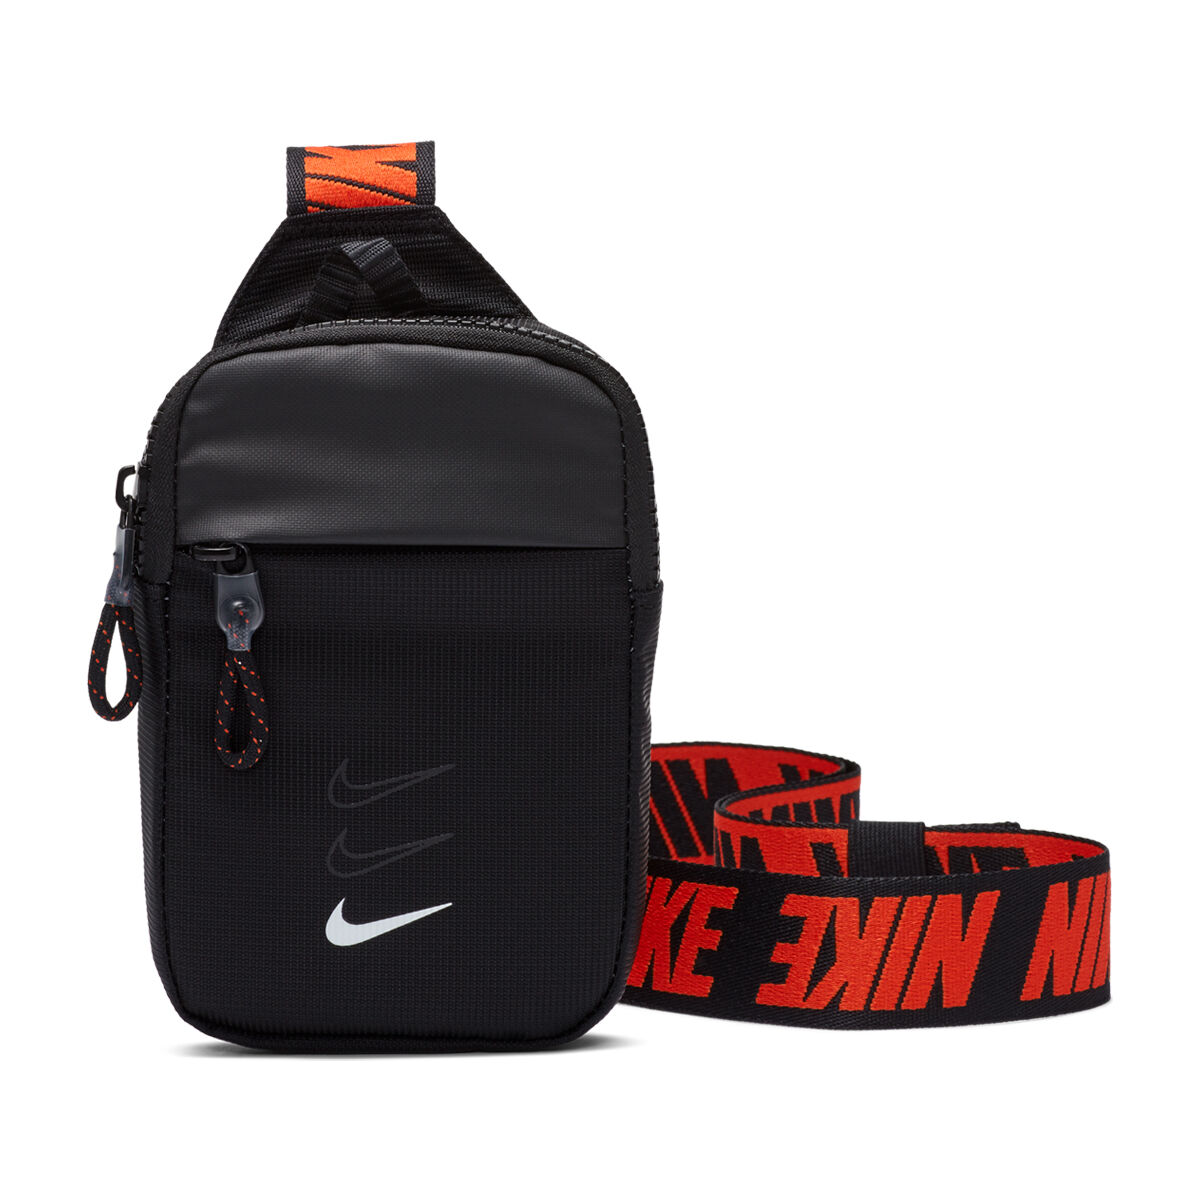 nike duffel bag for sale philippines off 63% www